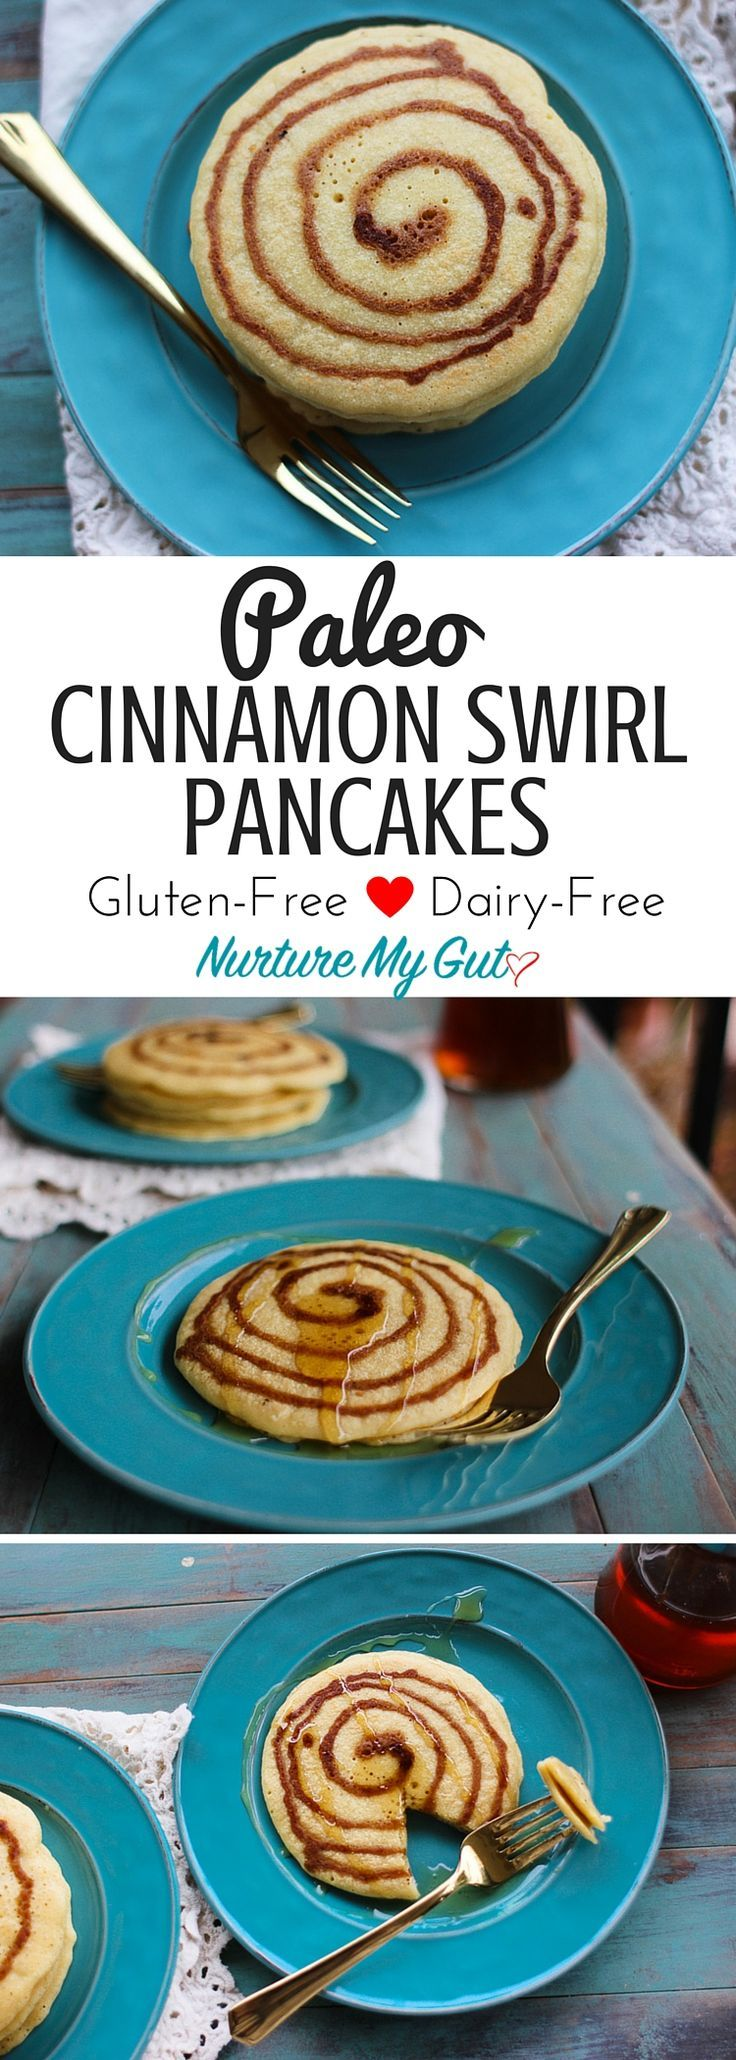 Paleo Cinnamon Swirl Pancakes.  Gluten Free, Dairy Free & Grain Free.  A yummy swirl made with cinnamon, coconut sugar and vanilla gives a great flavor and design to these fun, yummy breakfast pancakes!  Made with blend of blanched almond flour, tapioca and coconut flour for a light and fluffy pancake. Fool-proof tutorial!